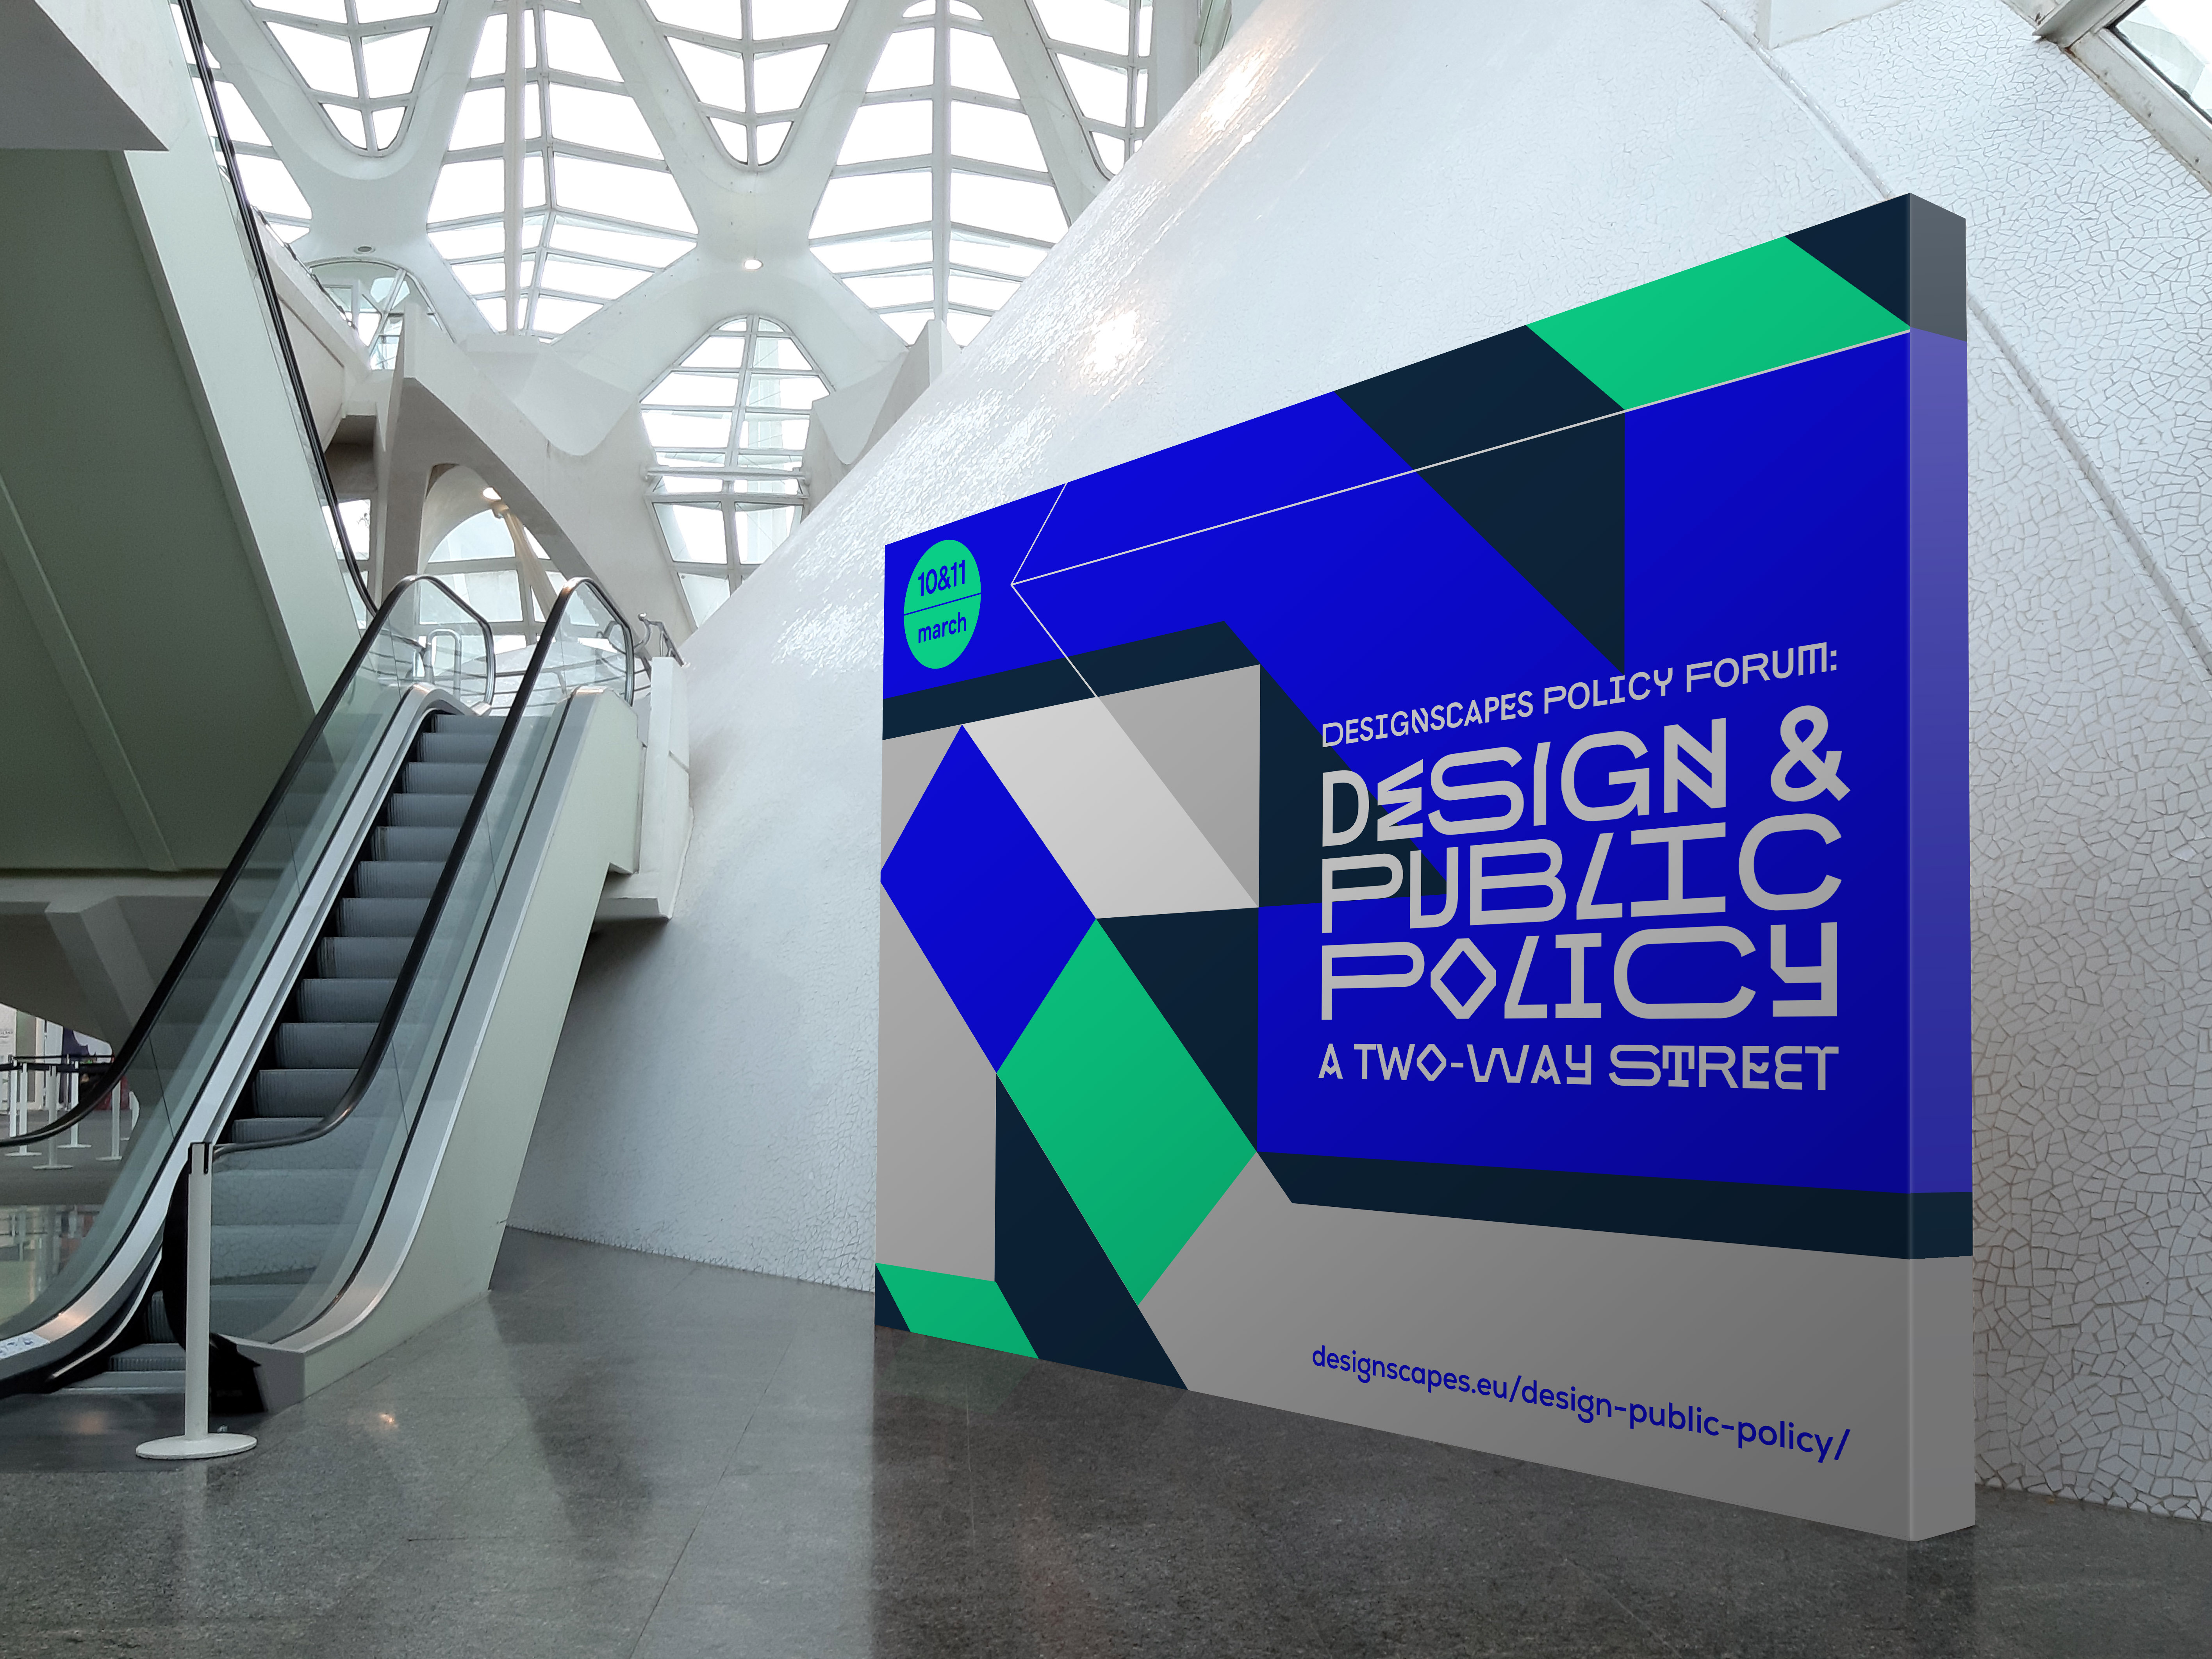 """DESIGNSCAPES Policy Forum: """"Design and Public Policy, A Two-Way Street"""" by Locandia Estudio - Creative Work"""